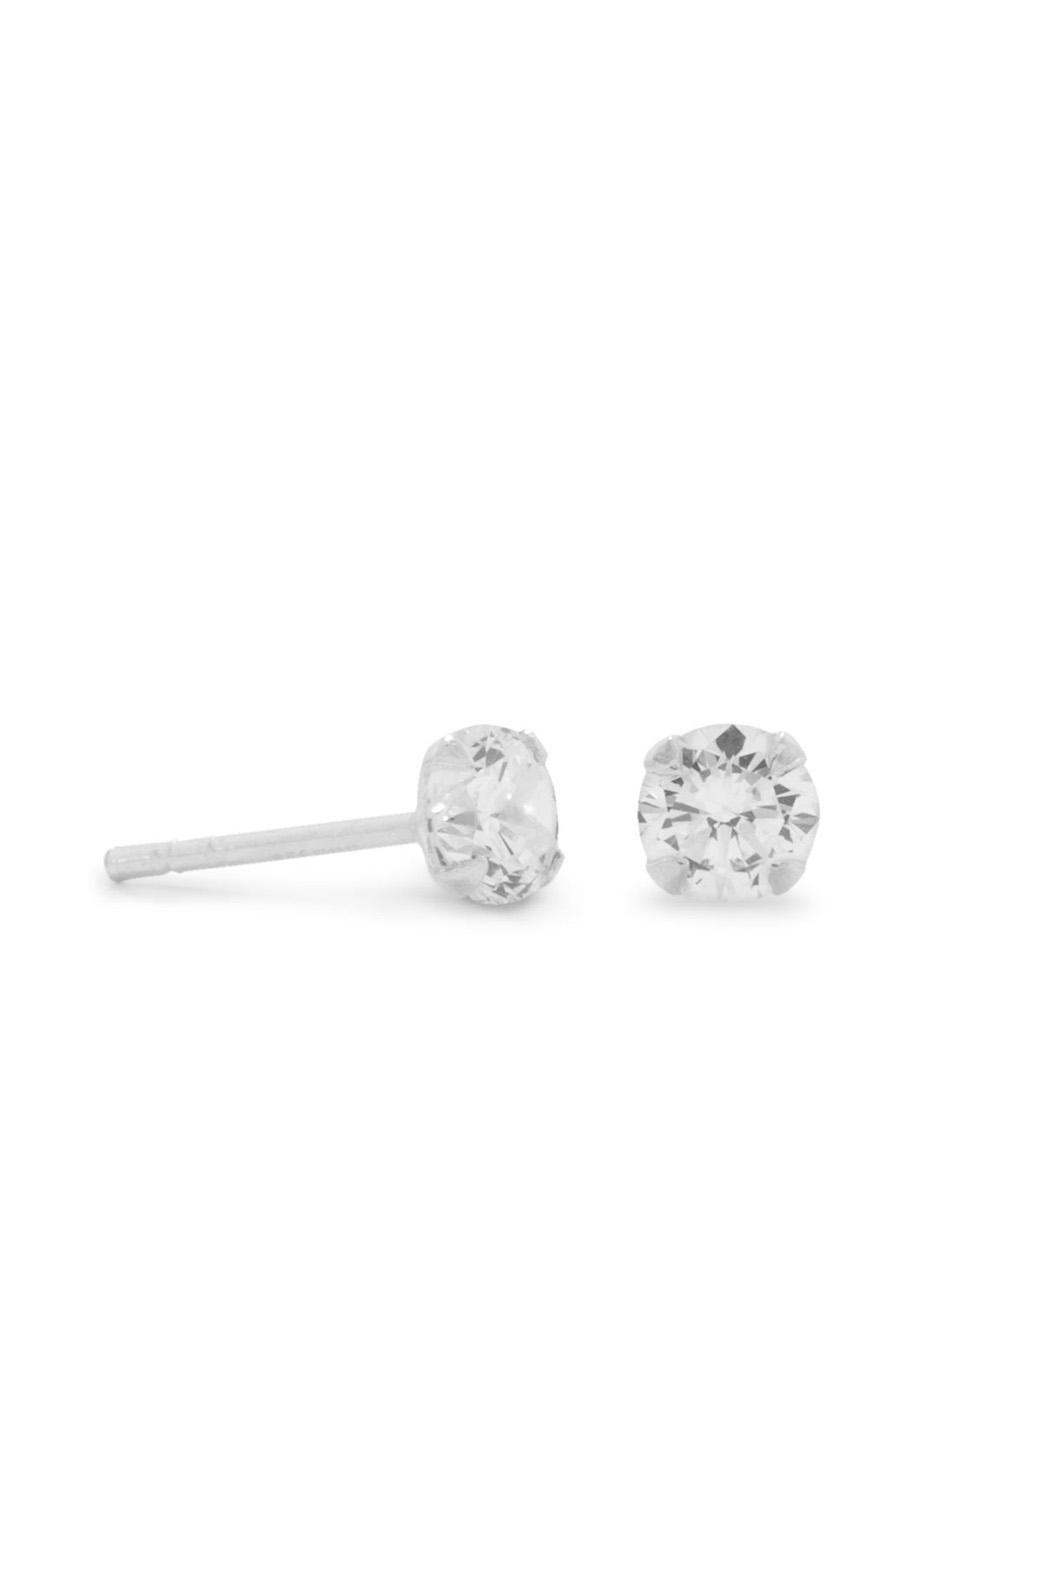 Wild Lilies Jewelry  Cz Stud Earrings - Front Full Image